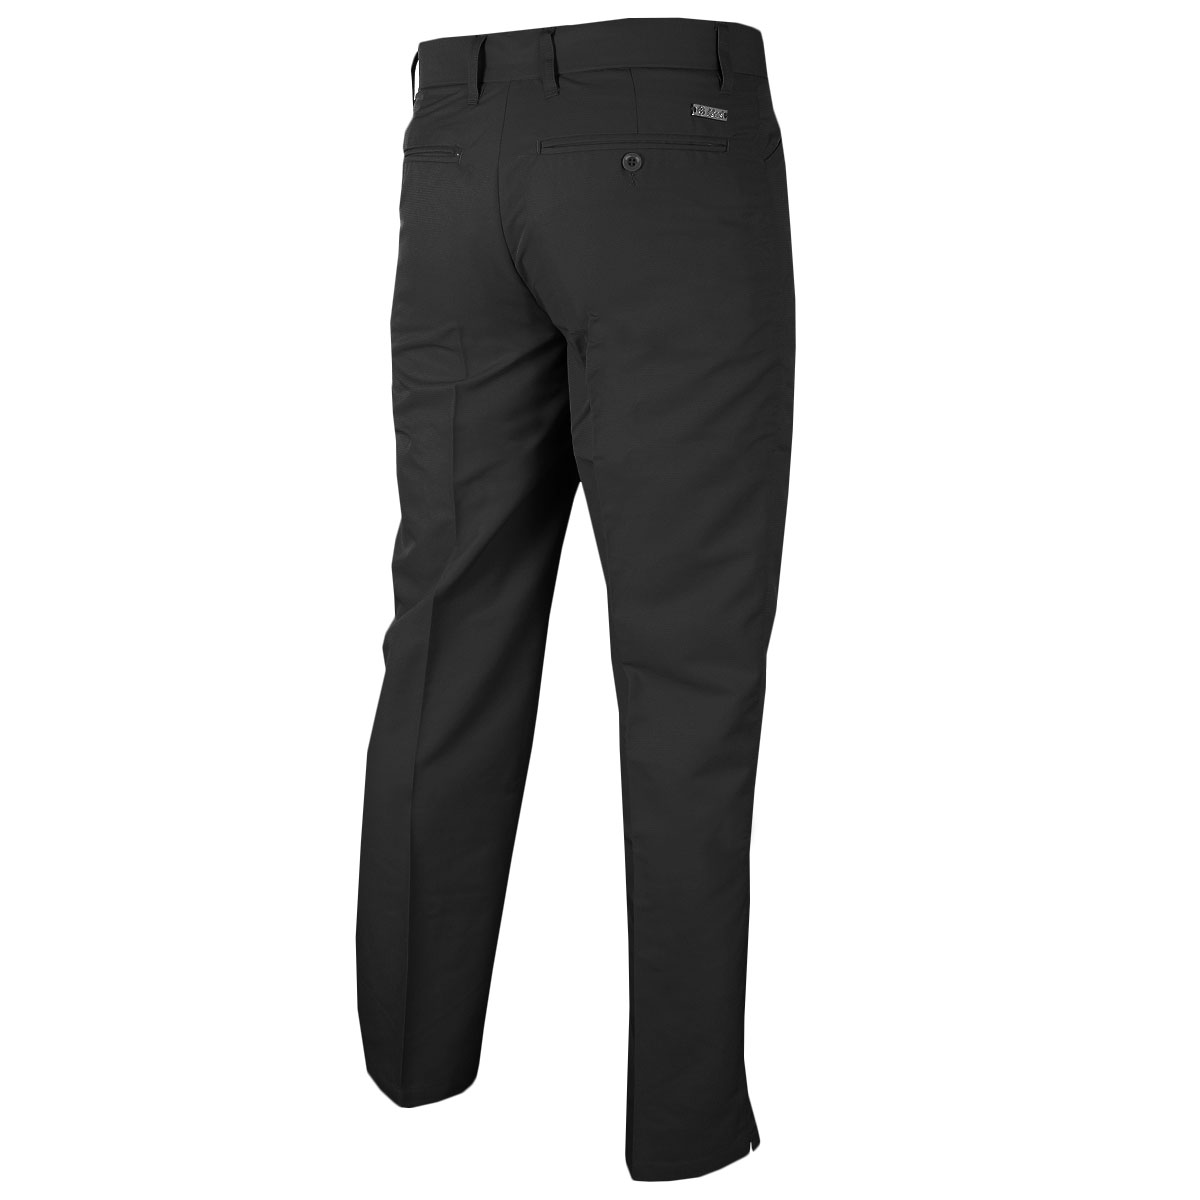 Island-Green-Mens-Tapered-Golf-Trousers-Performance-Pant-53-OFF-RRP thumbnail 3